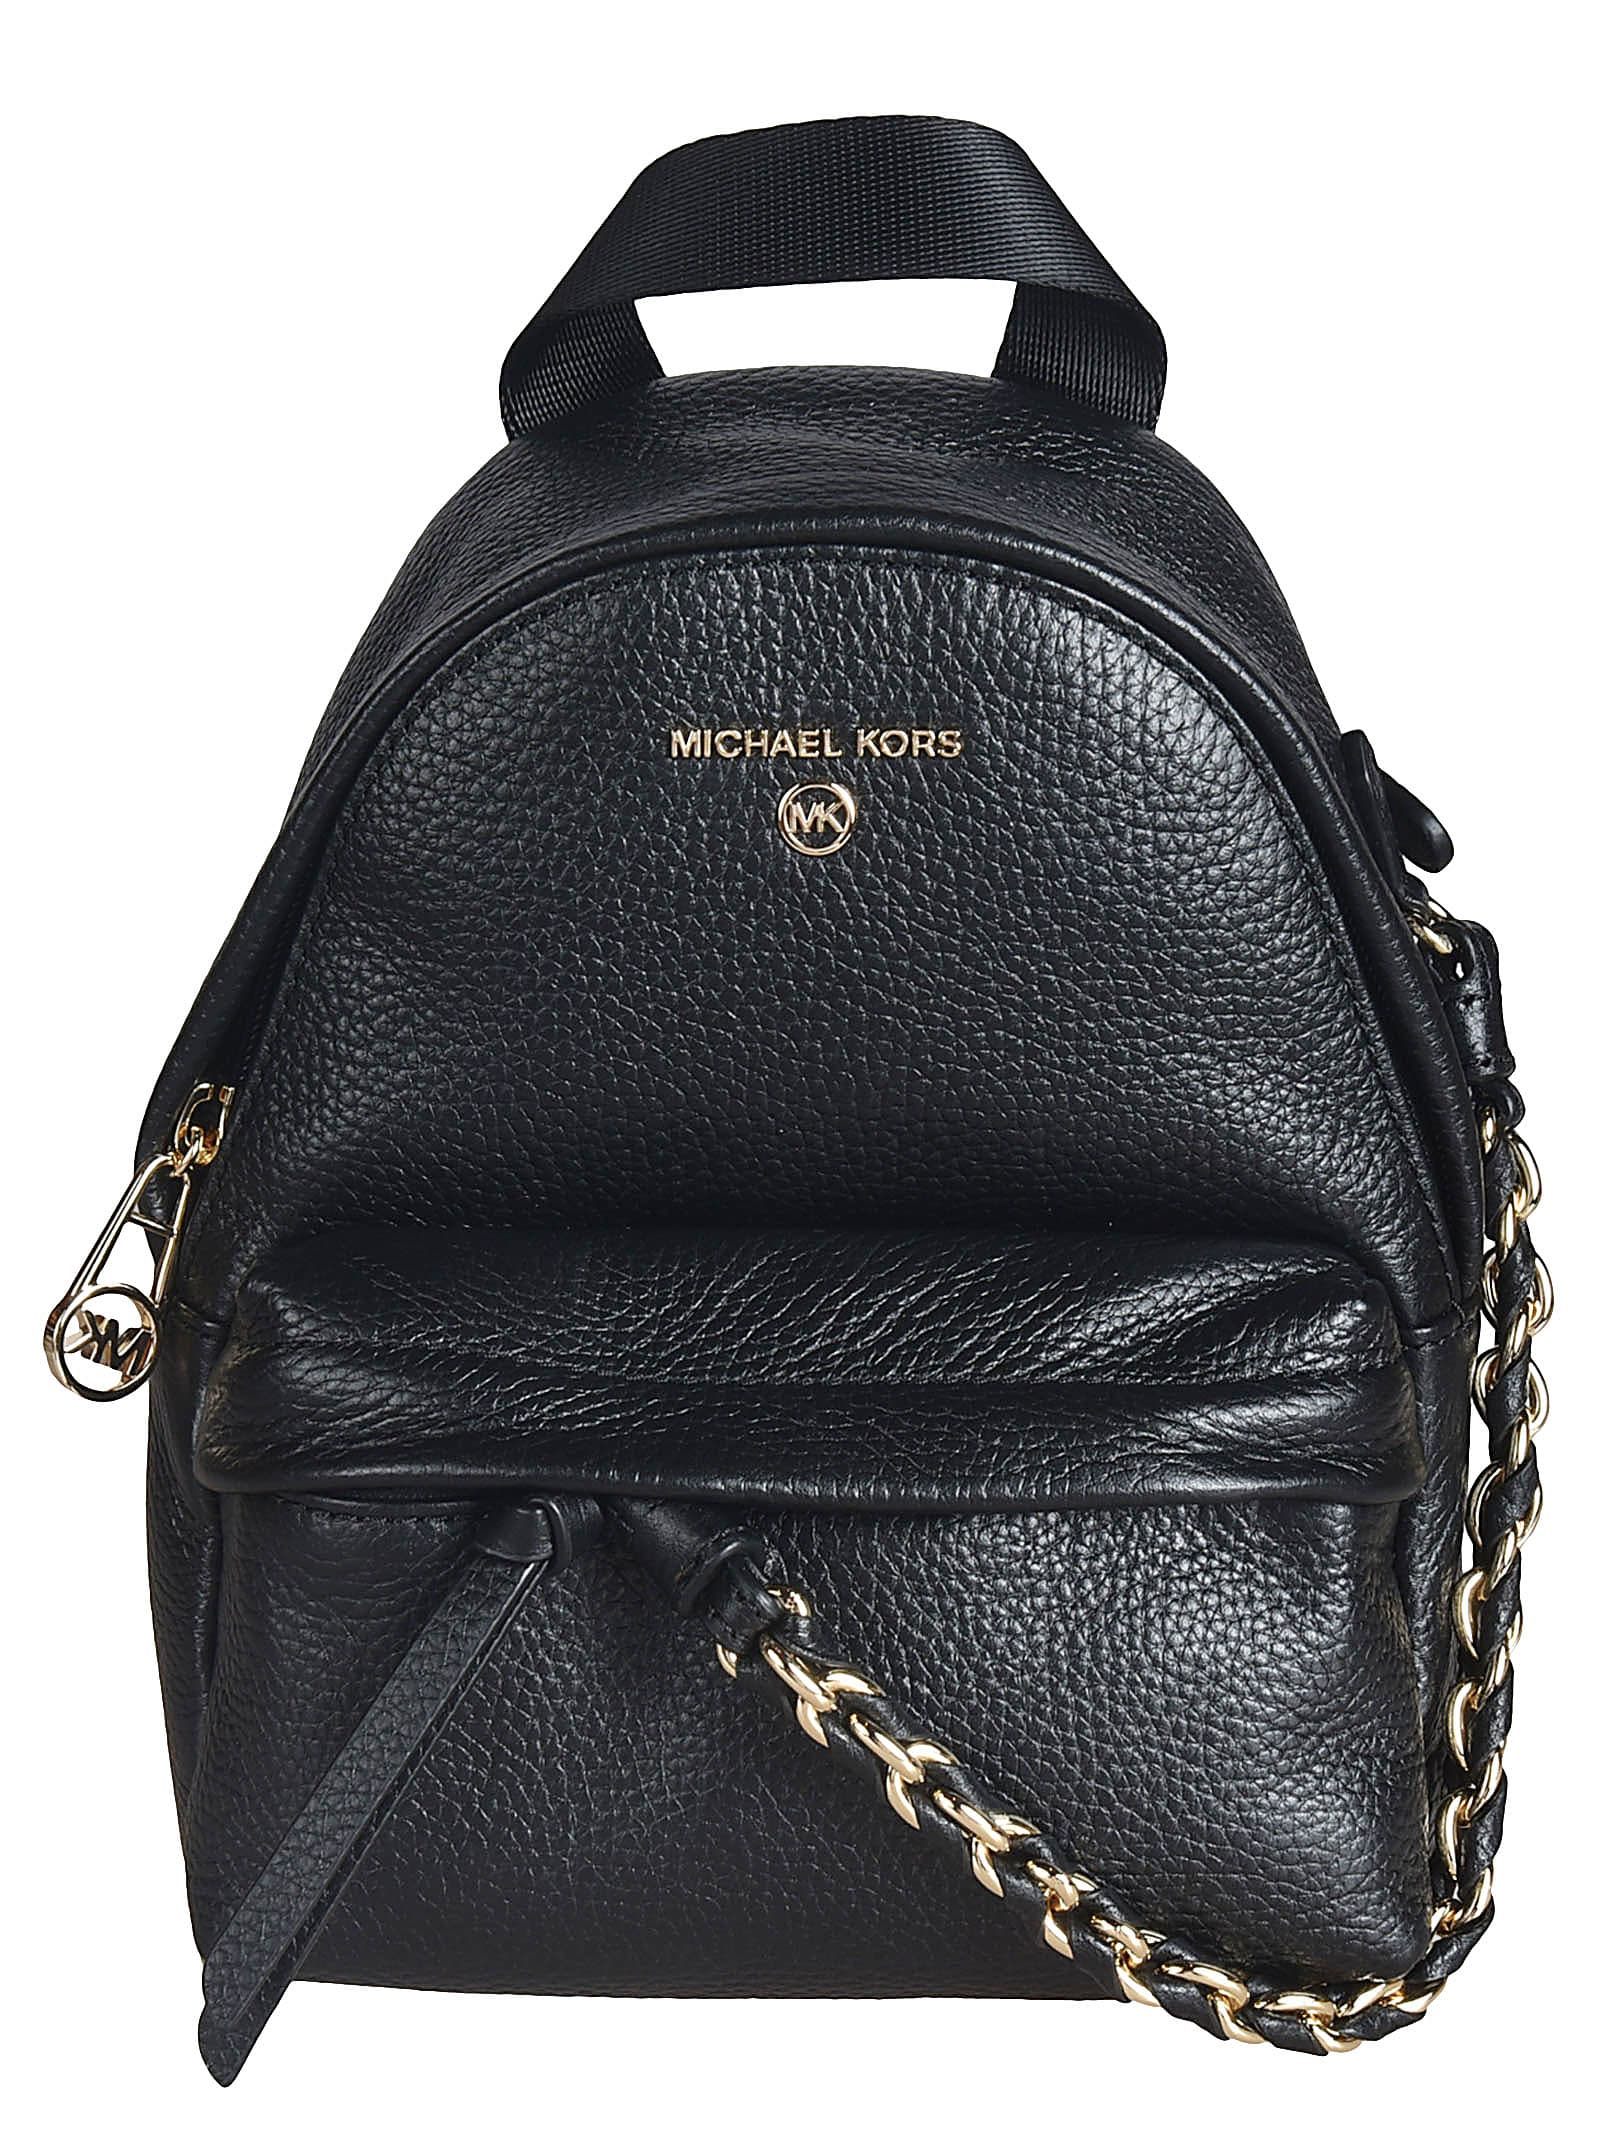 Michael Kors EXTRA SMALL MESSENGER BACKPACK